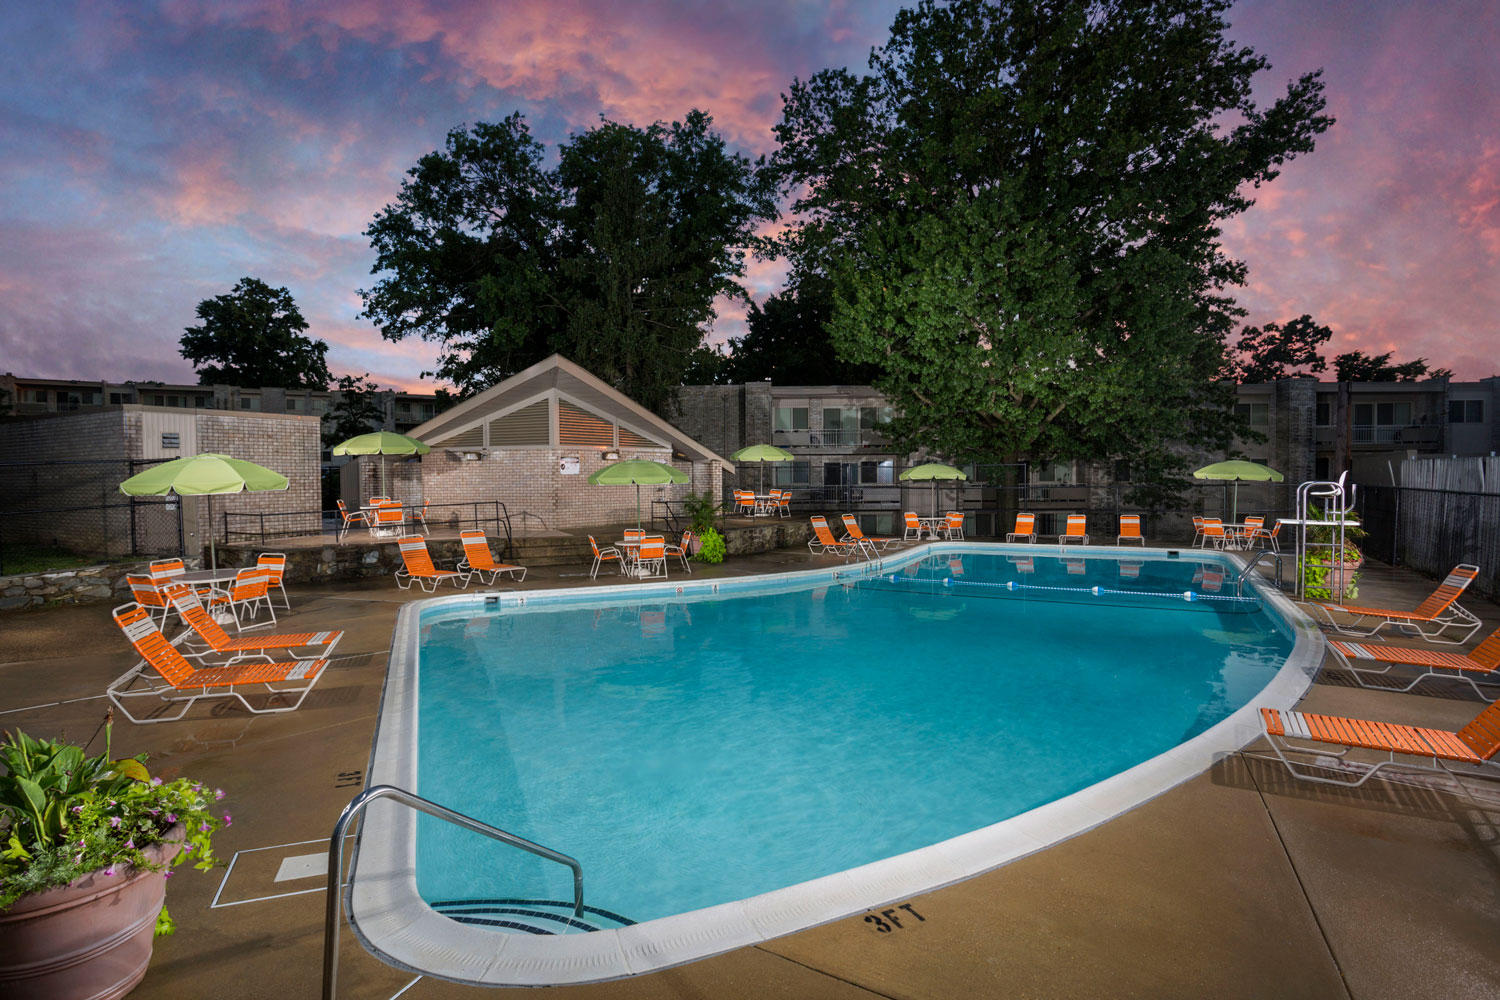 Refreshing swimming pool at Riverside Plaza Apartments in Oxon Hill, MD